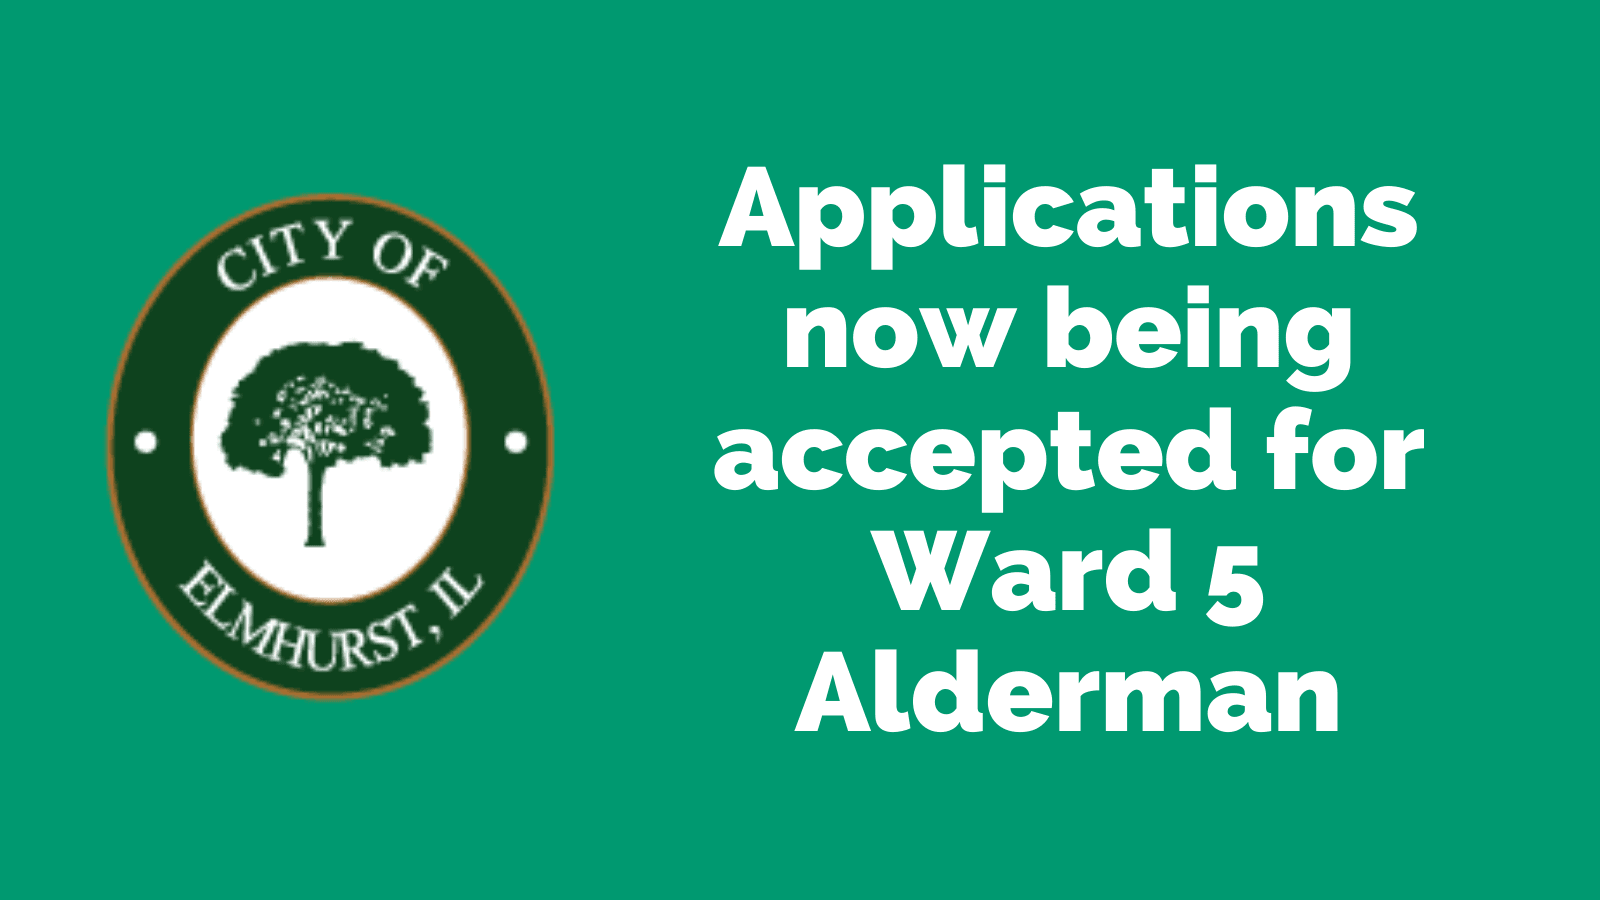 ward 5 alderman